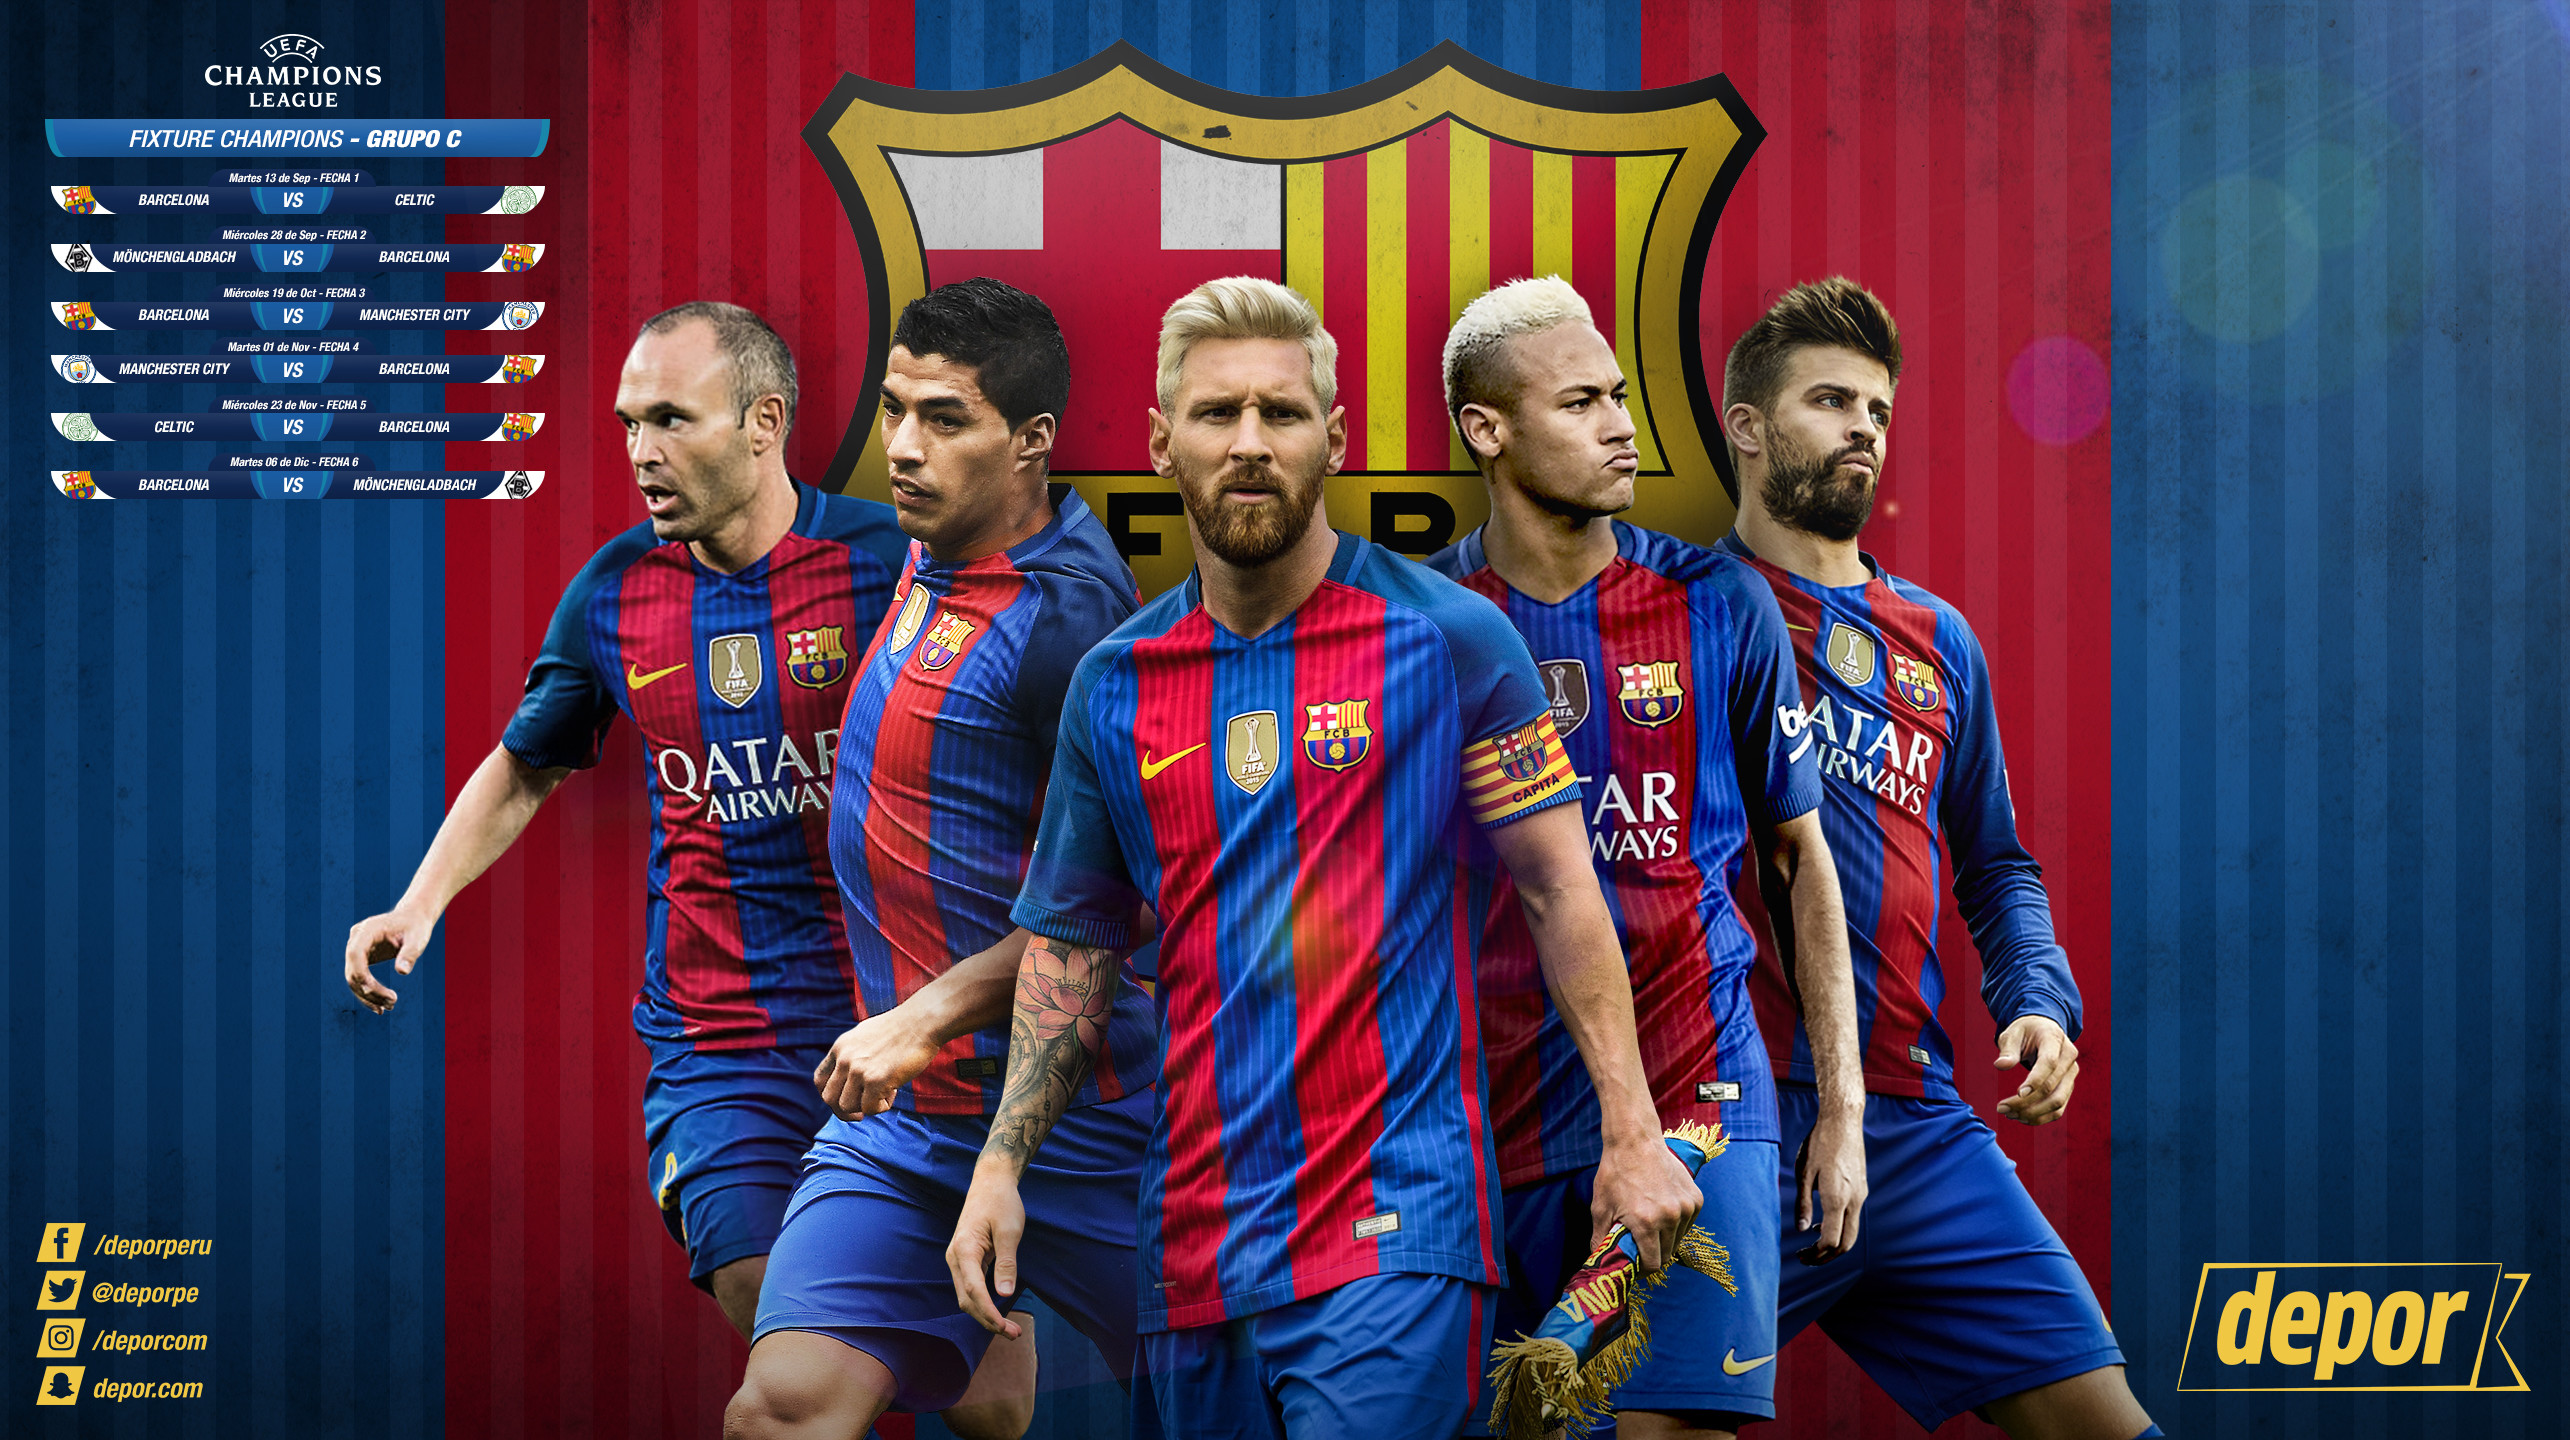 Fondos De Pantalla Del Fútbol Club Barcelona Wallpapers: Fc Barcelona Wallpaper 2018 (67+ Images